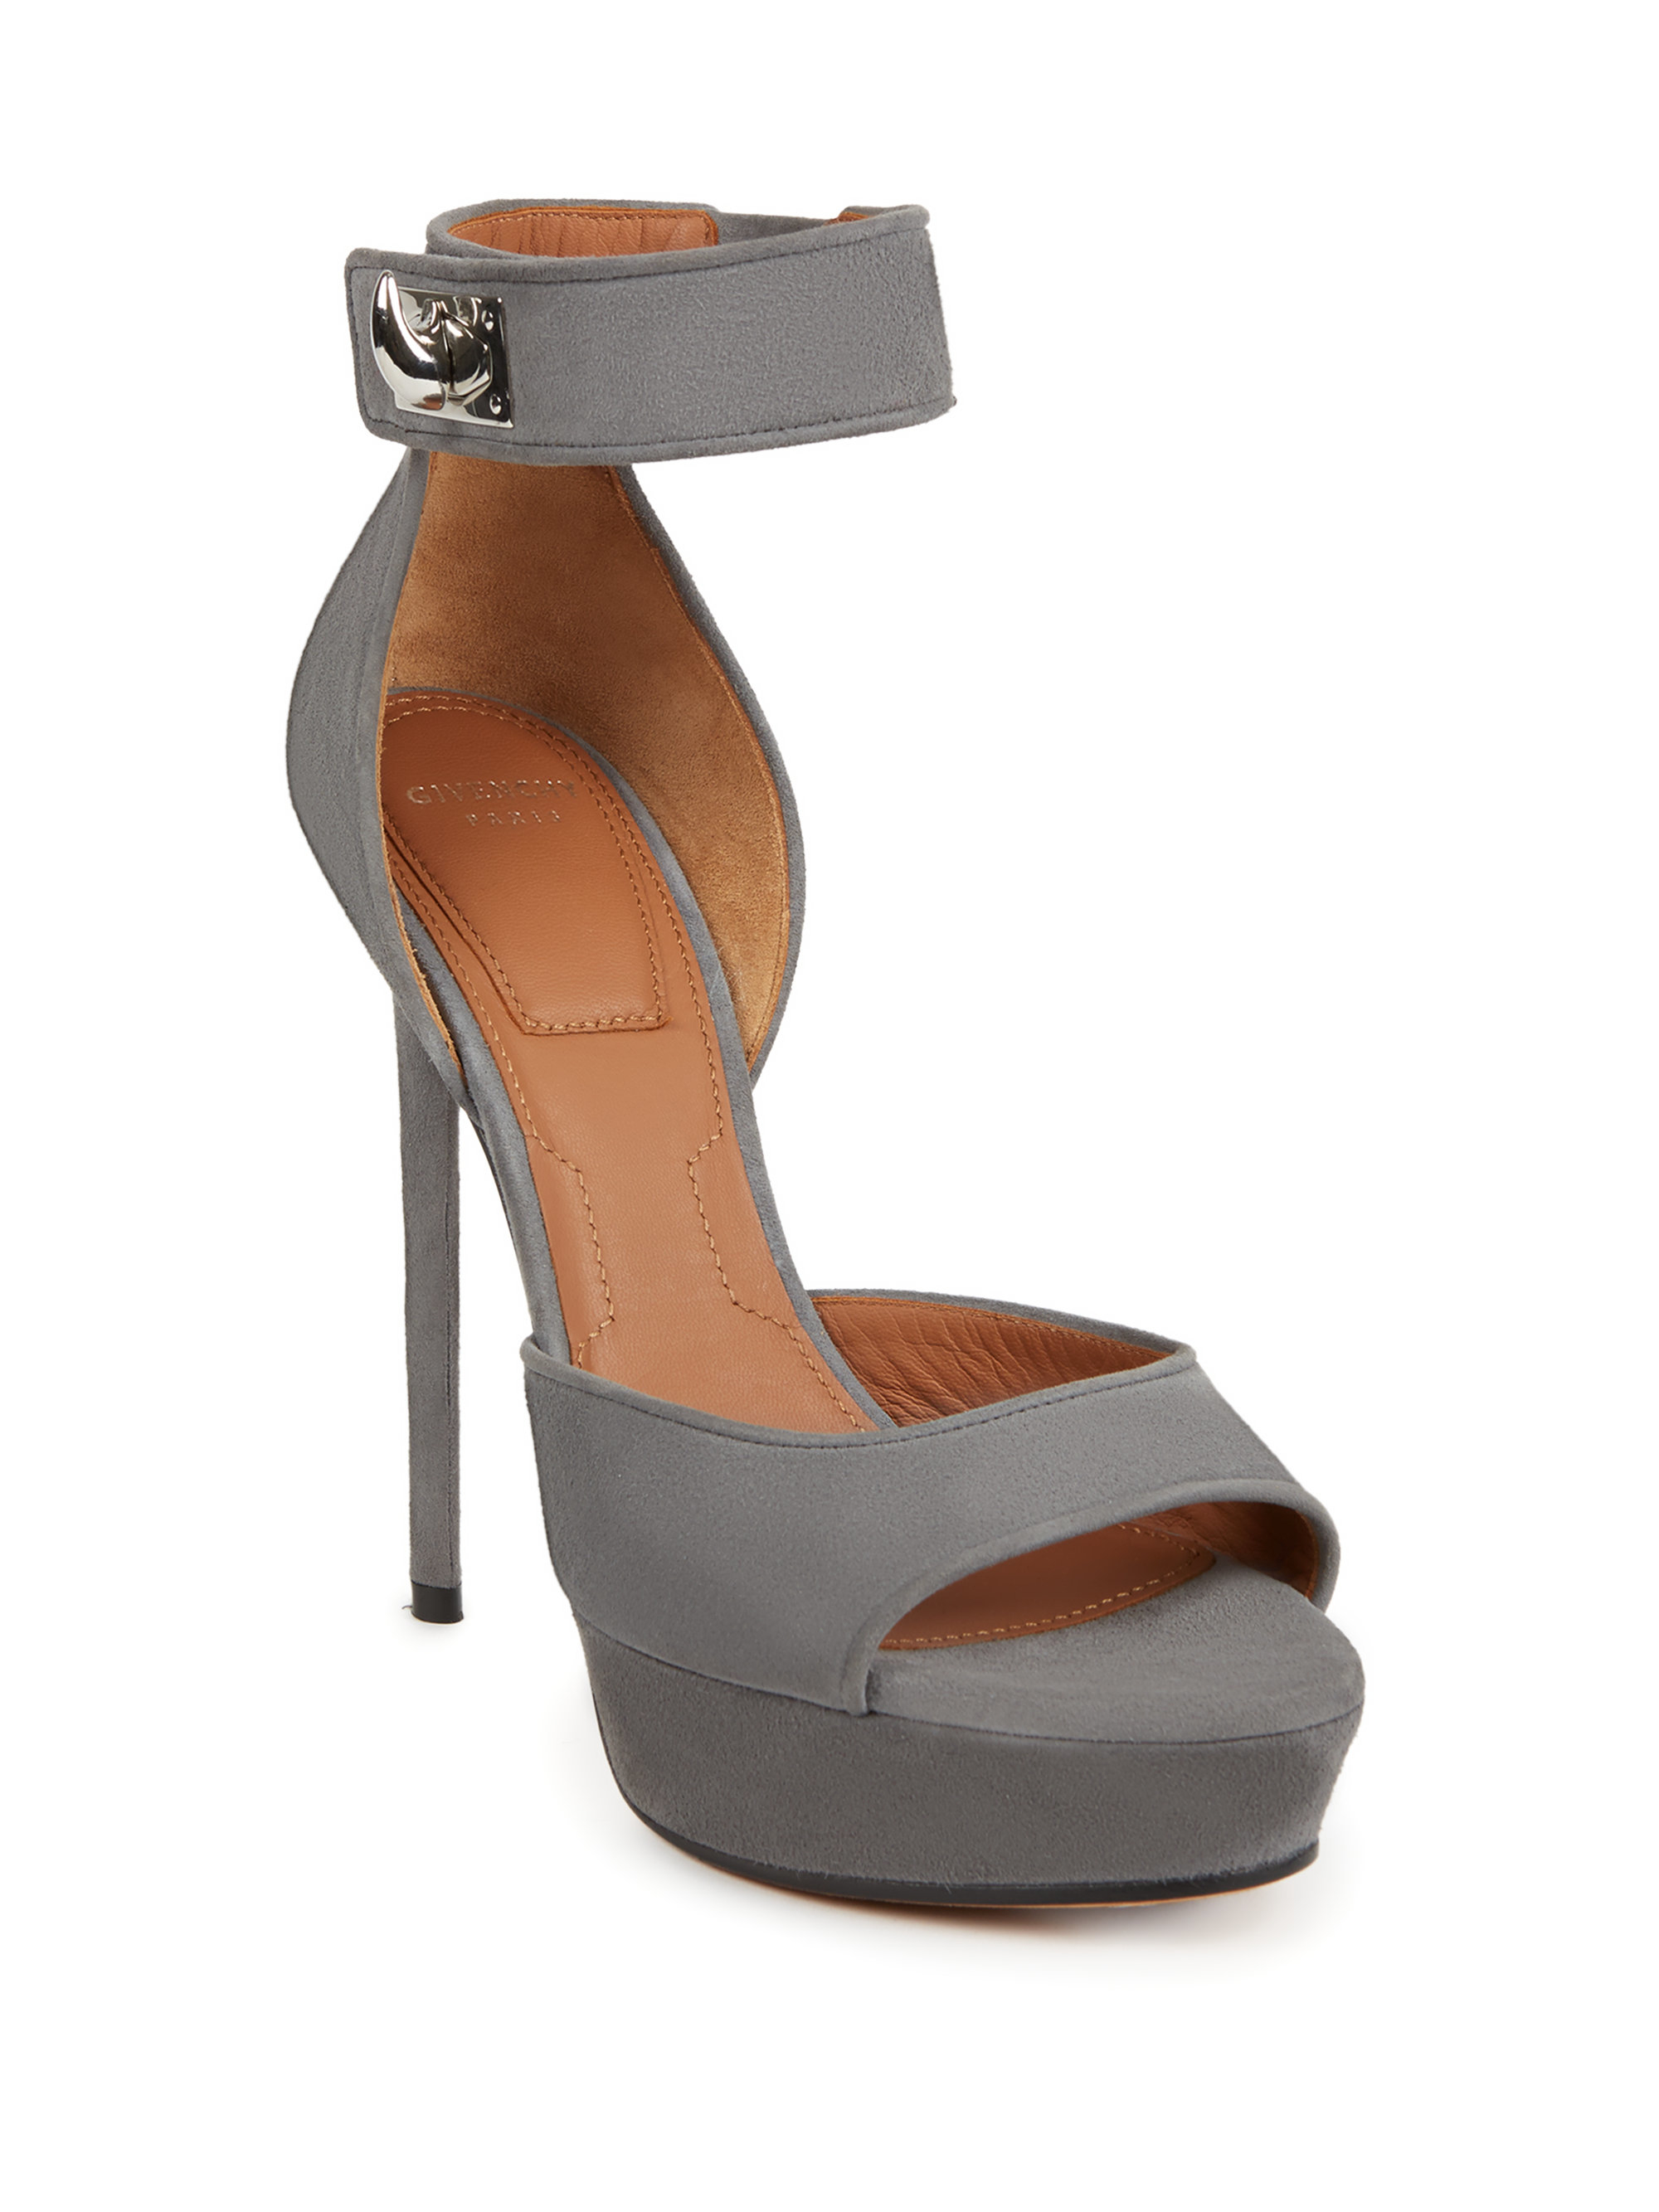 d44ff1c3a81d Lyst - Givenchy Suede Shark-lock Platform Sandals in Gray